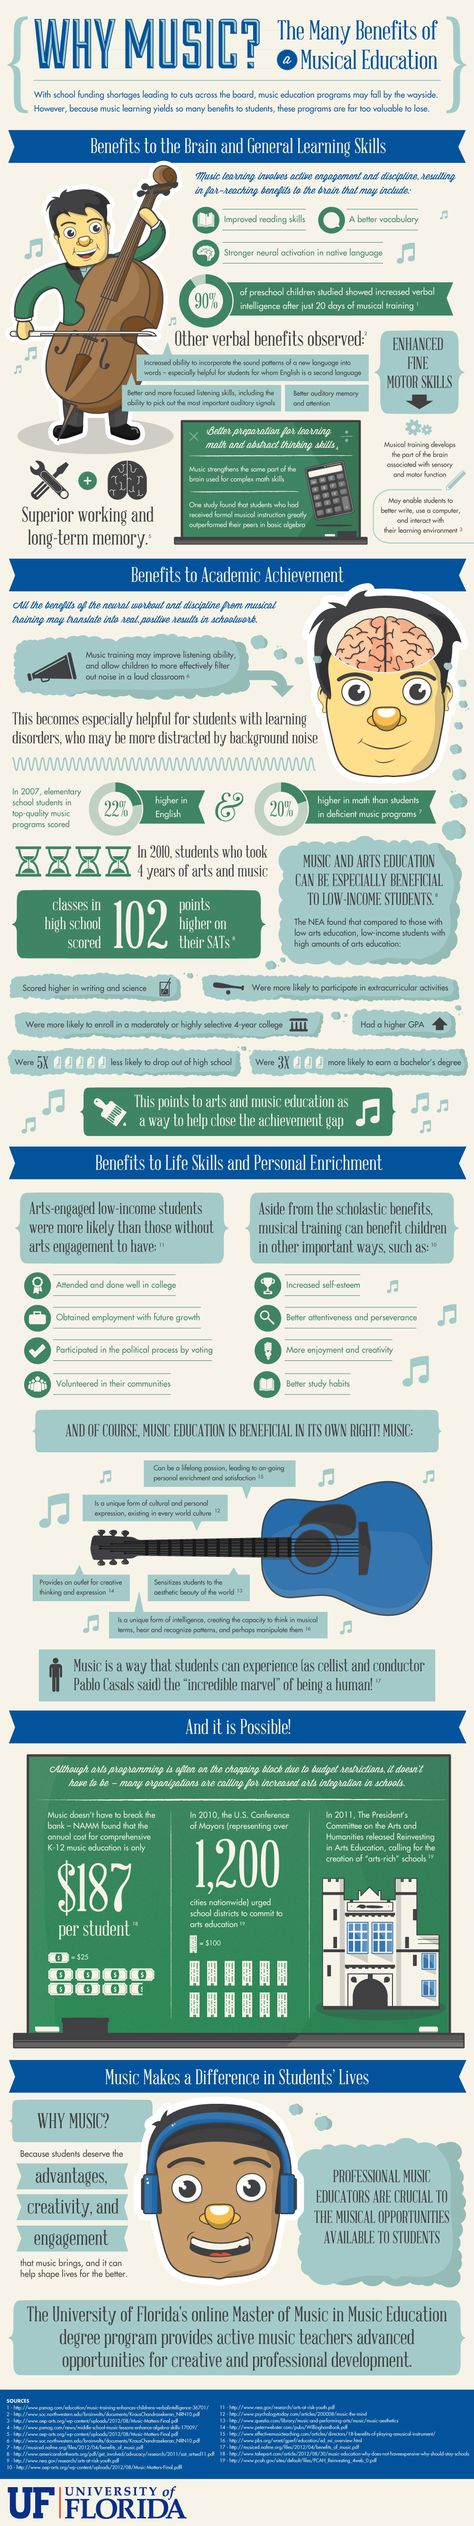 uses of social networking essay Benefits Of Music Education